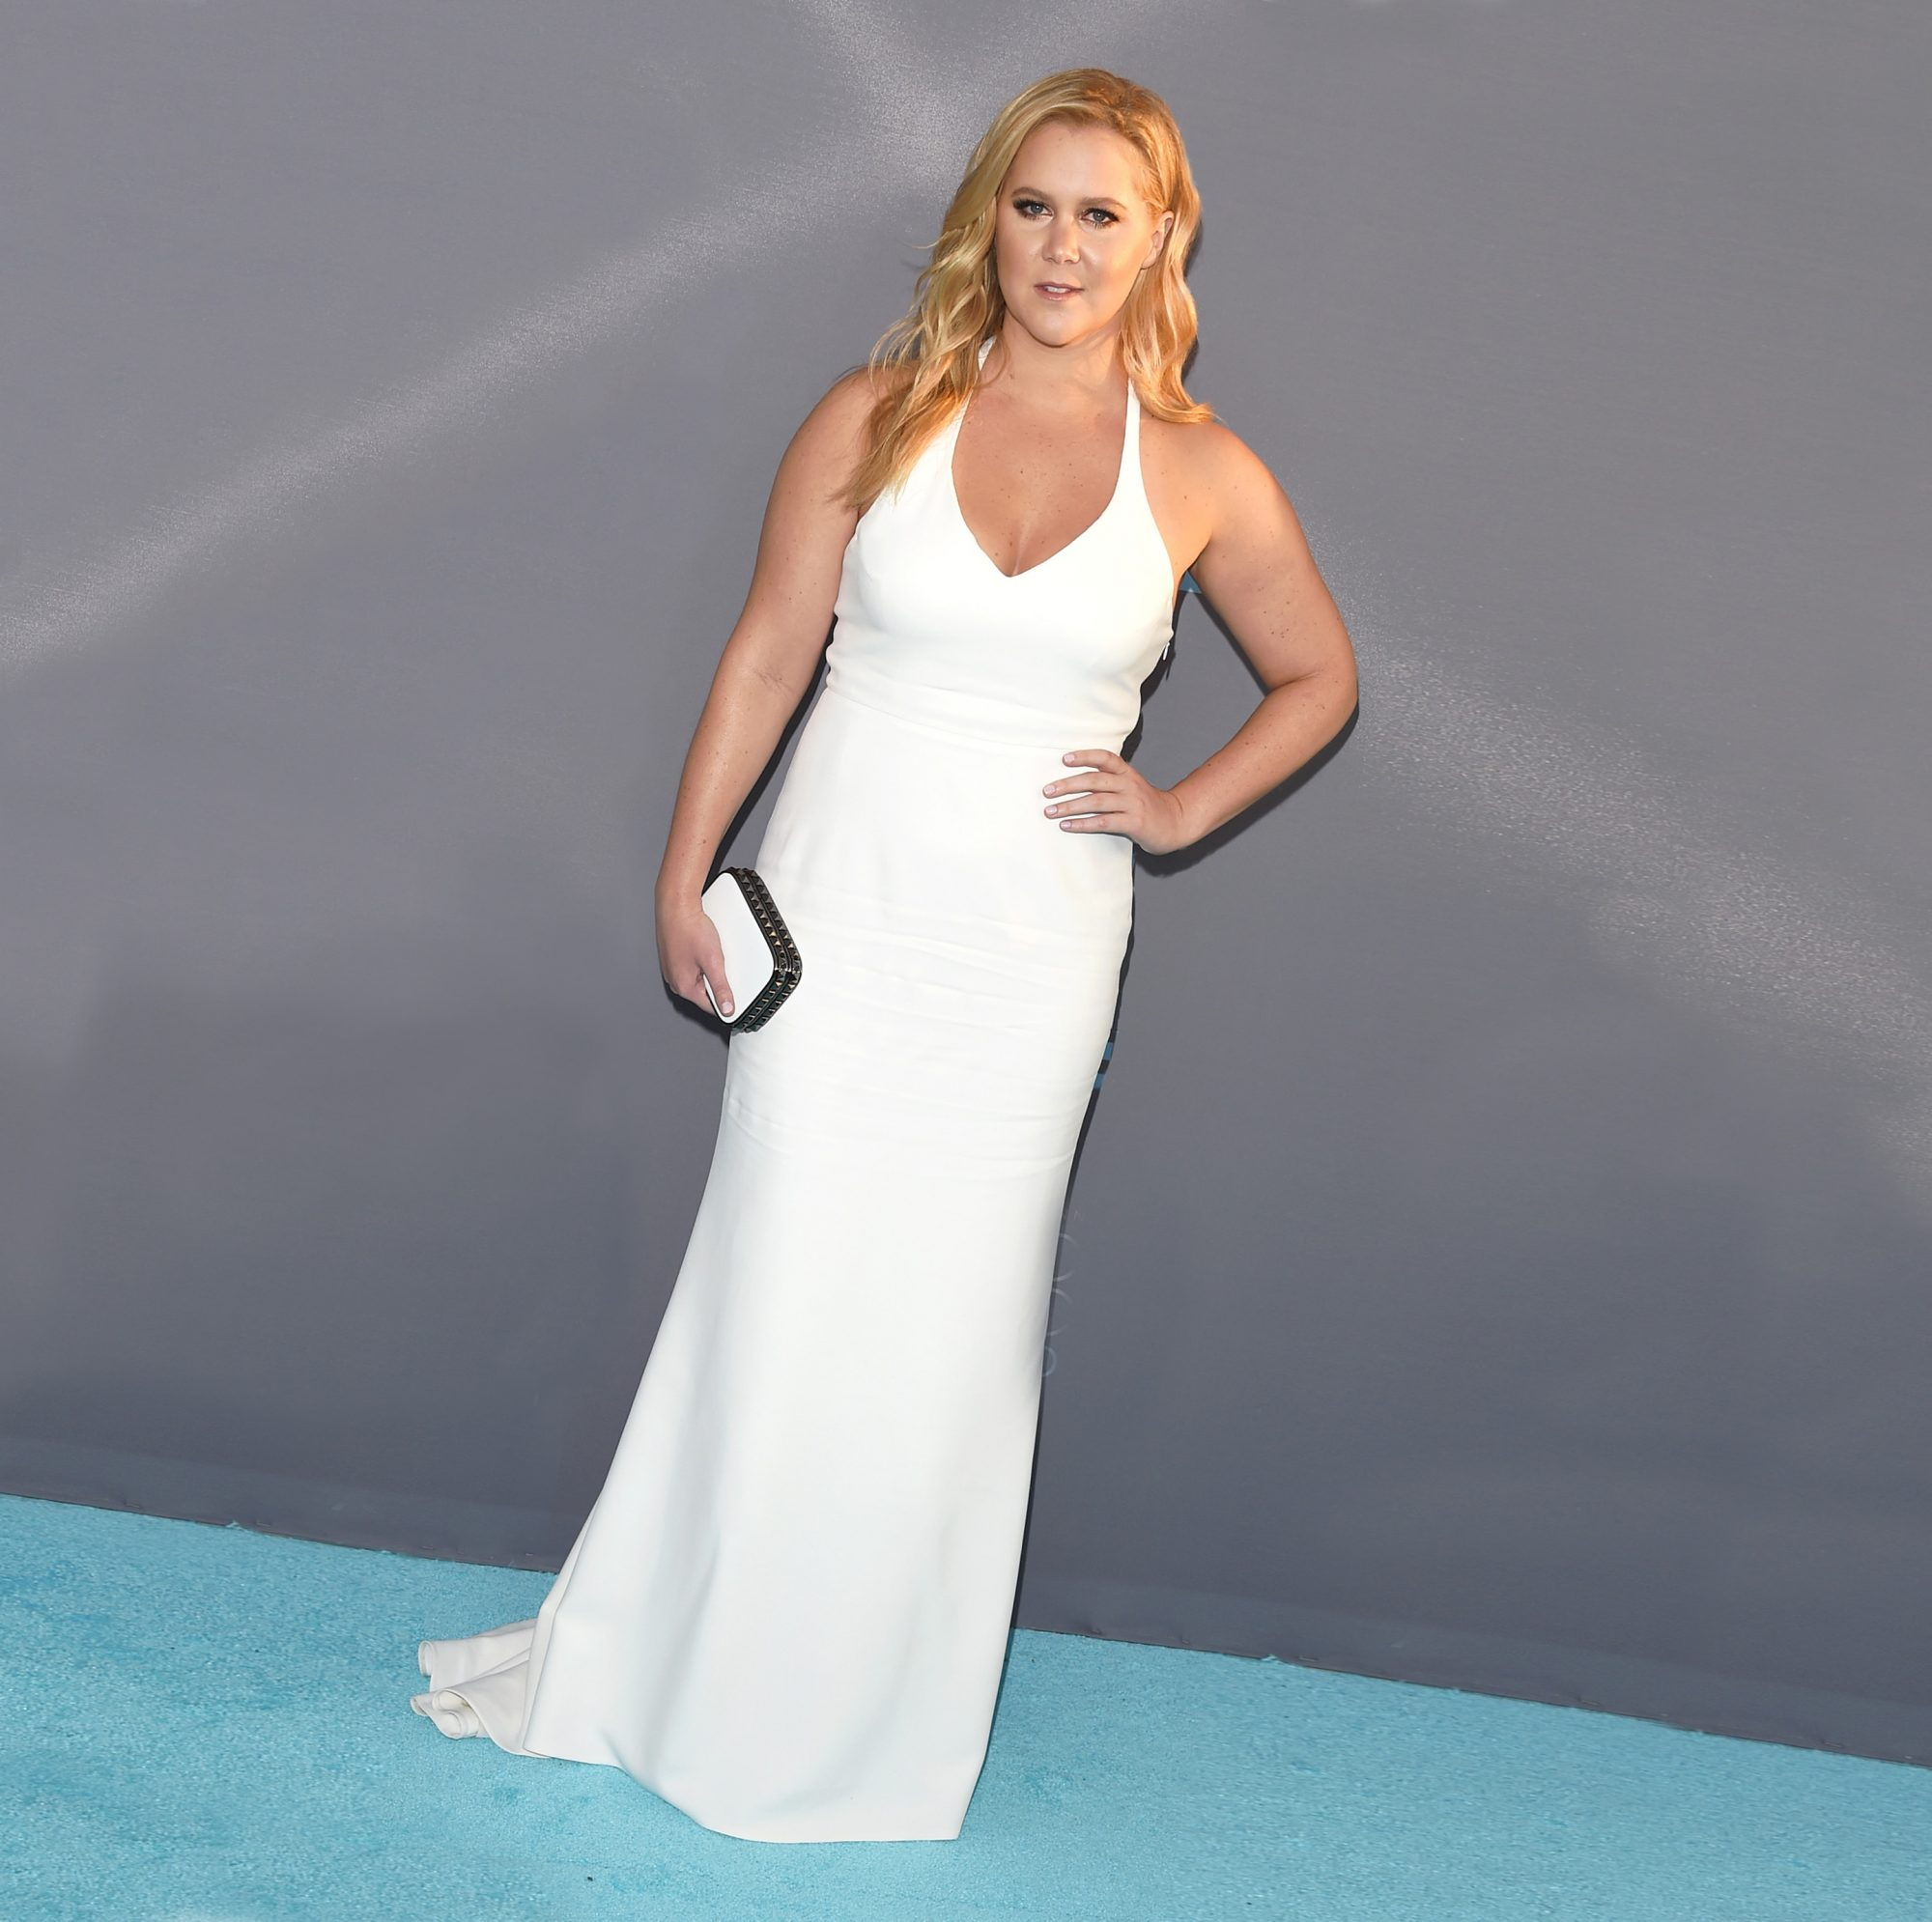 amy-schumer-white-dress